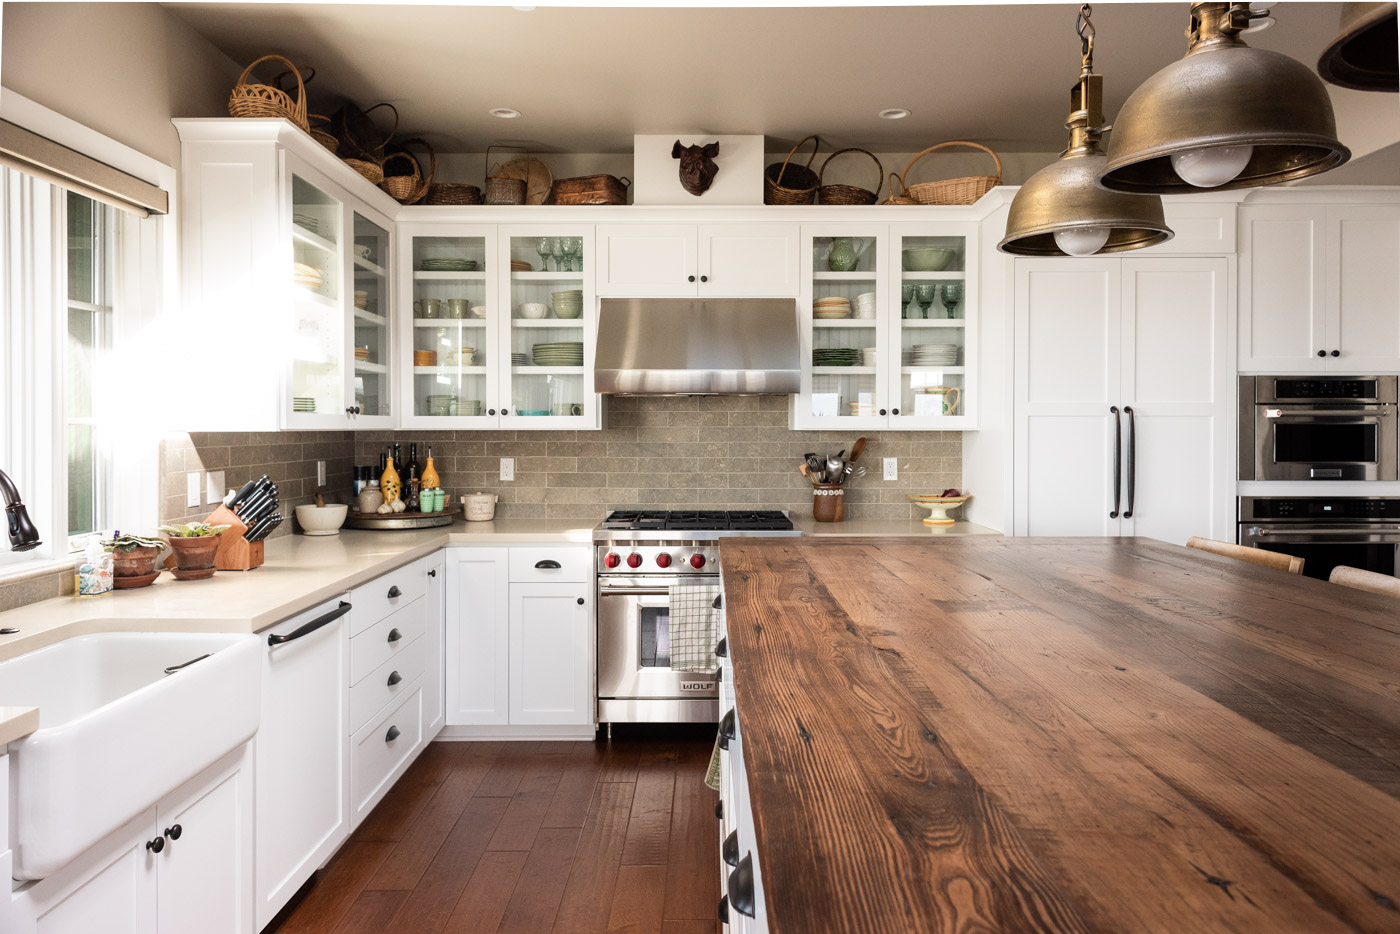 An example of an L-shaped kitchen layout with custom white painted shaker style cabinets